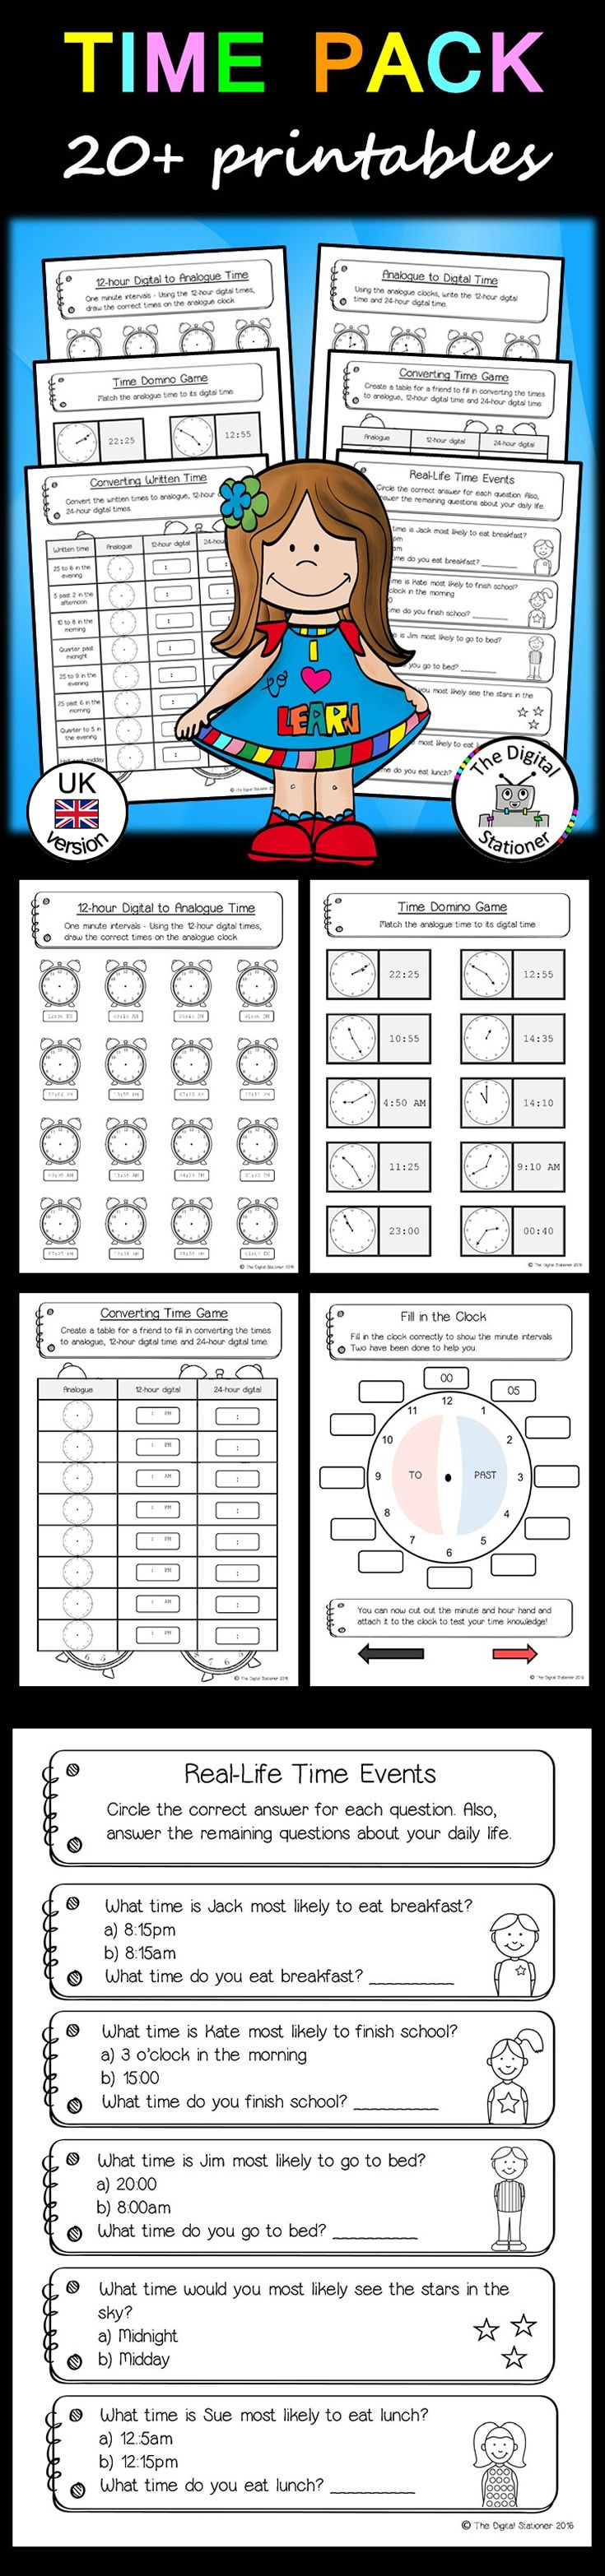 Uncategorized Primary Resources Maths Worksheets 249 best primary maths images on pinterest time pack telling the analogue digital uk version 20 printables resourcesworksheetstelling